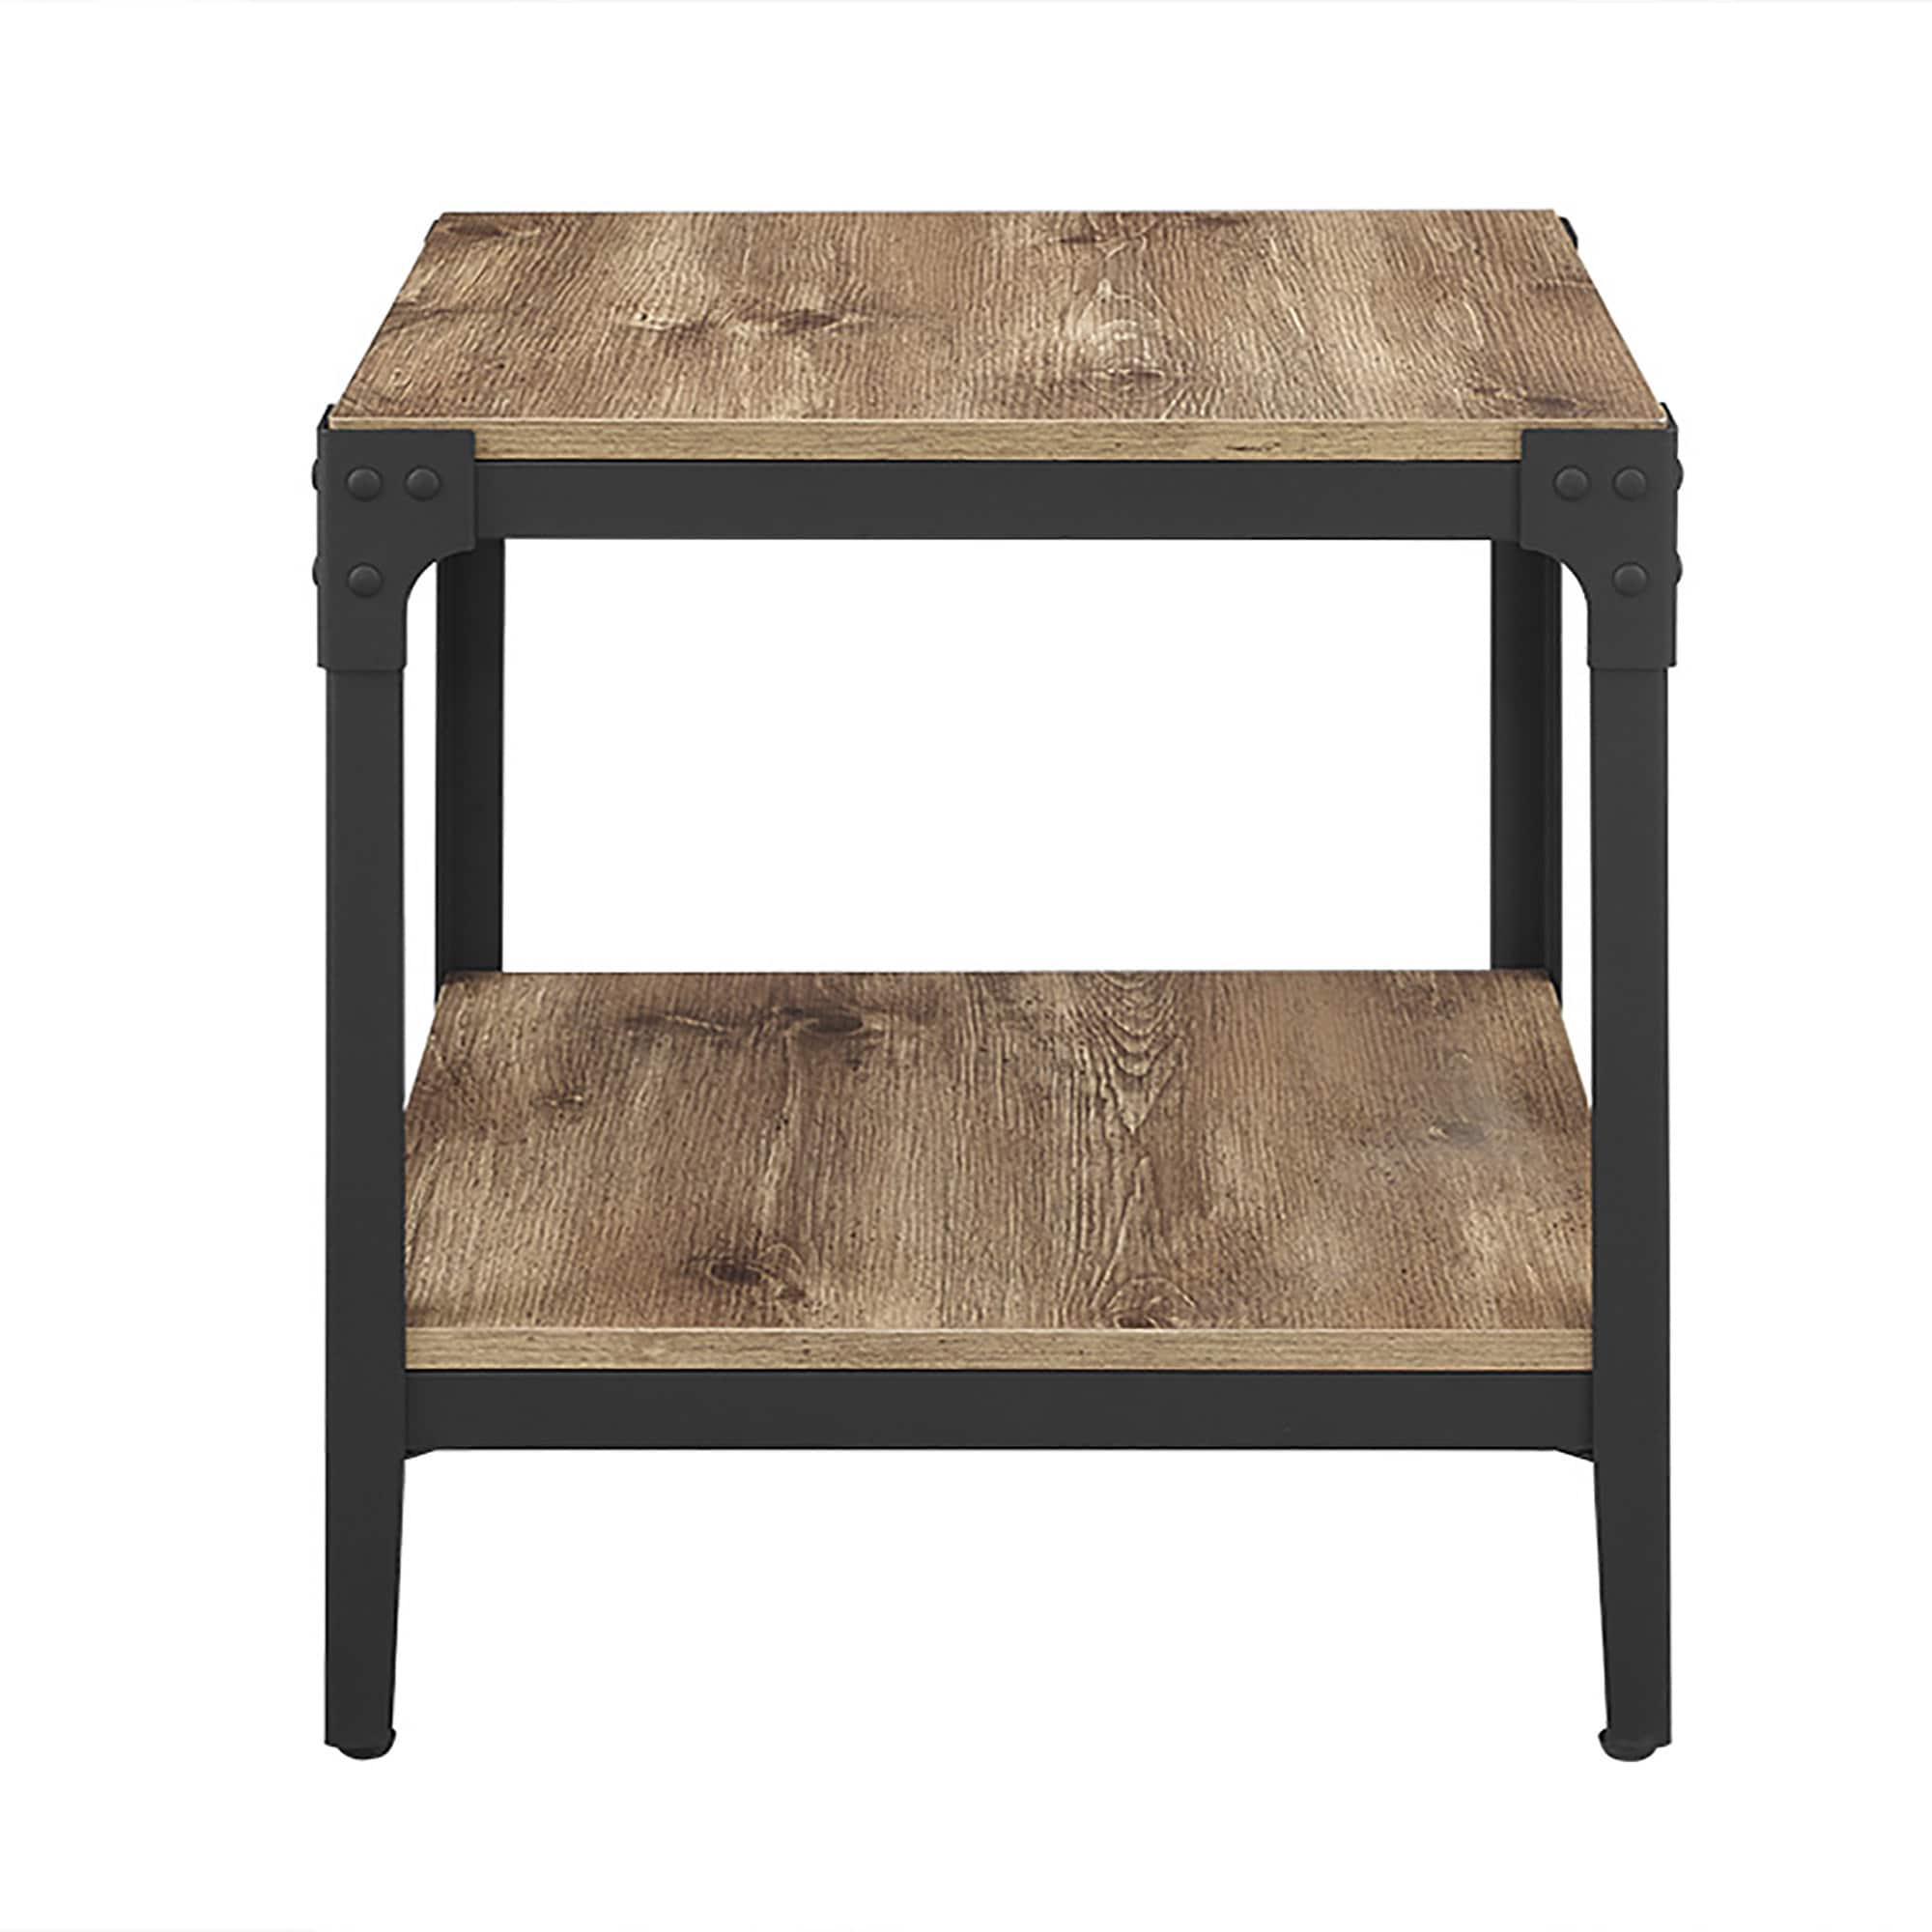 Rustic Angle Iron Barnwood End Tables Set of 2 Free Shipping